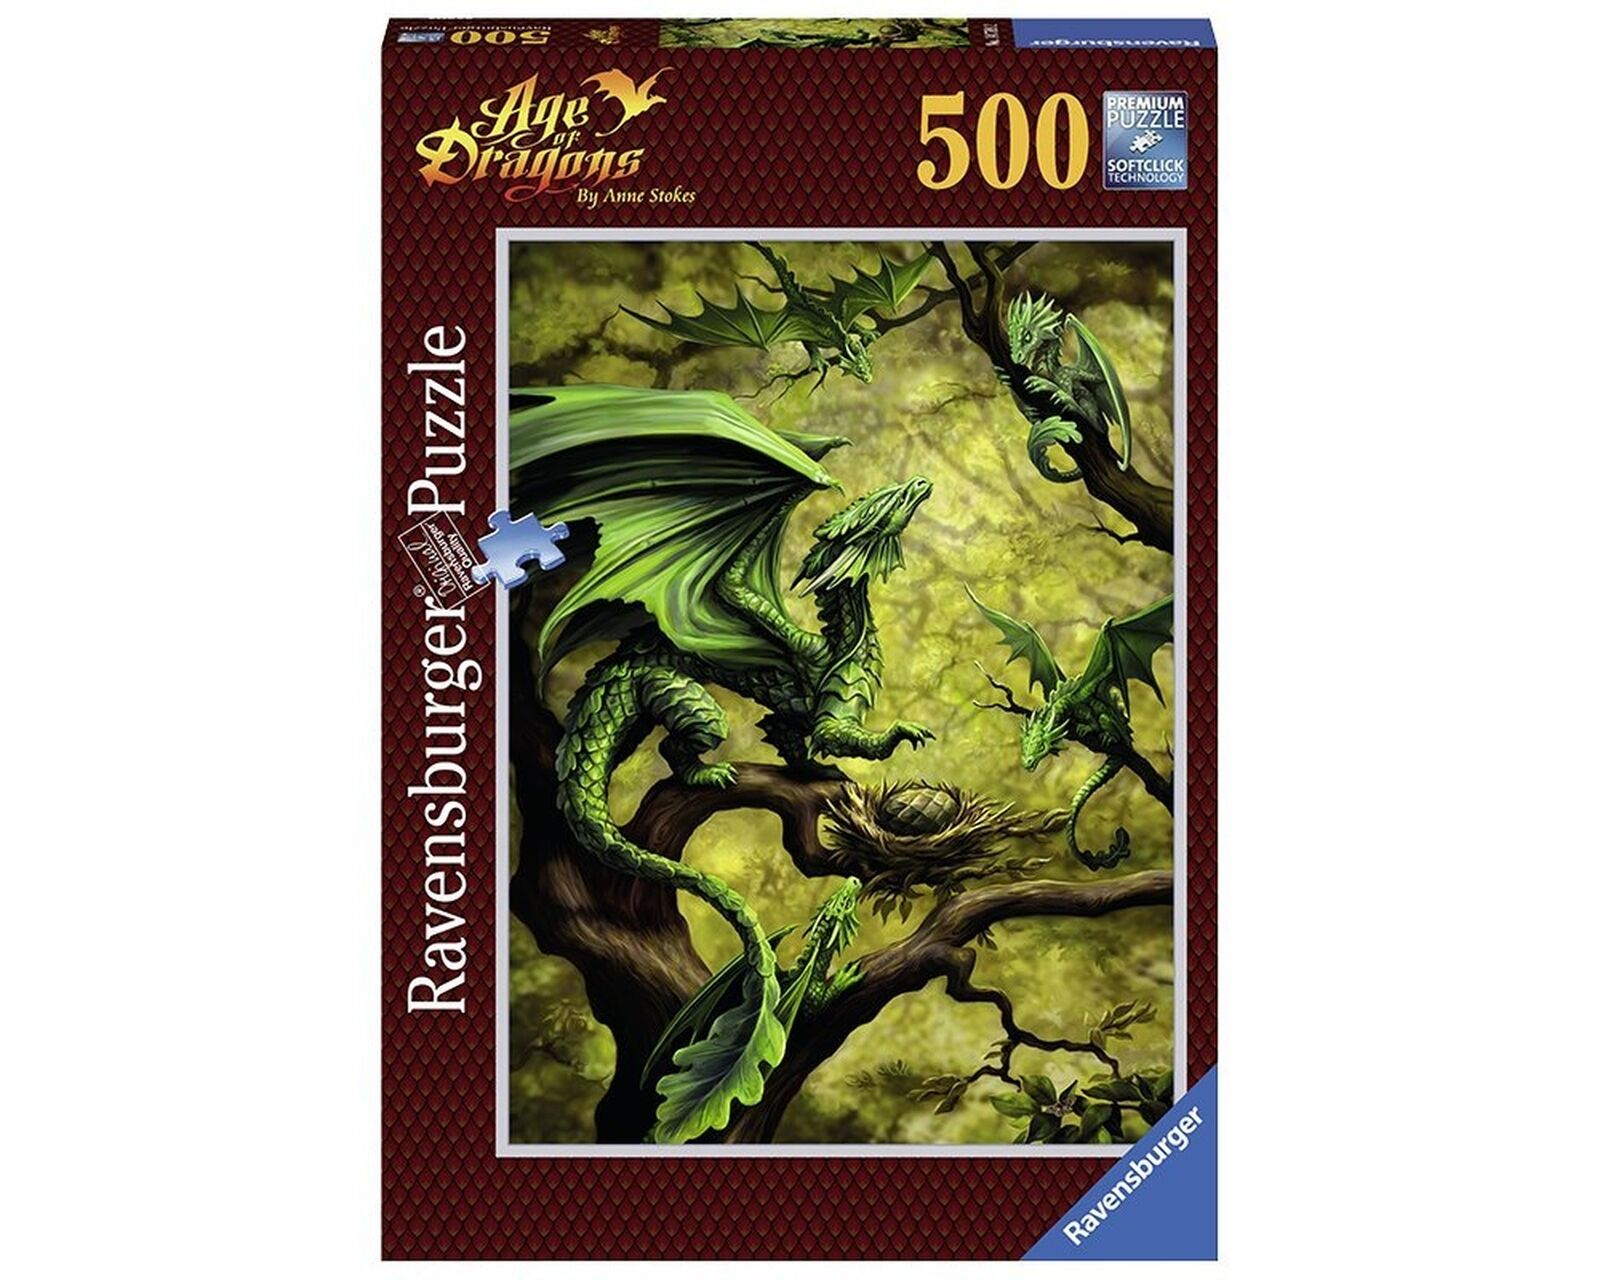 Forest Dragon By Anne Stokes Puzzle - 500 Pieces